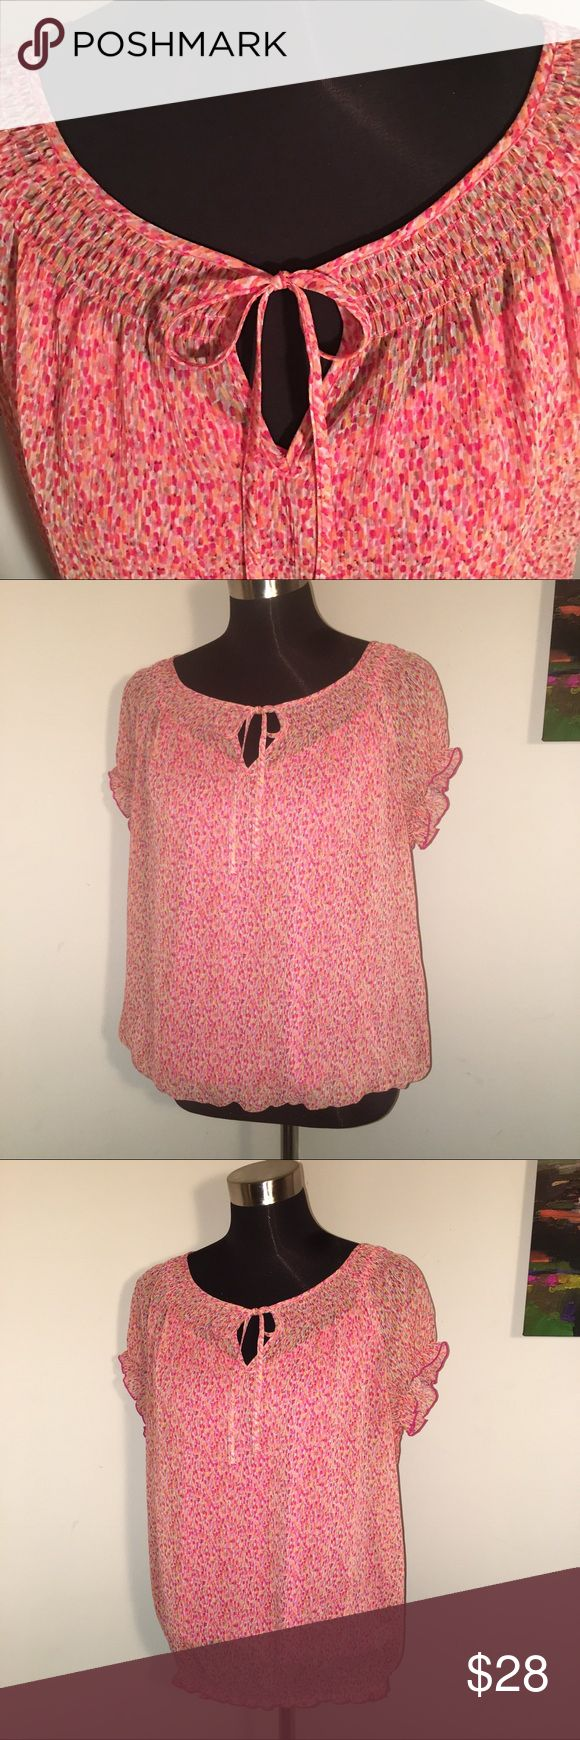 🆕 LIZ CLAIBORNE 2-PIECE BLOUSE SET 🆕 Fun pink and orange watercolor print blouse set by Liz Claiborne. Sheer outer top has scoop neck with smocked neckline and tie in front. Cap sleeves with elastic that creates tiny ruffle. Waist has same smocking as neckline and can be turned under for slight blouson effect. (See second photo). Pink Cami is attached to over blouse at back shoulder seam. Both are machine washable polyester. Smoke free. I ❤️ reasonable offers. Bundle for further discount…